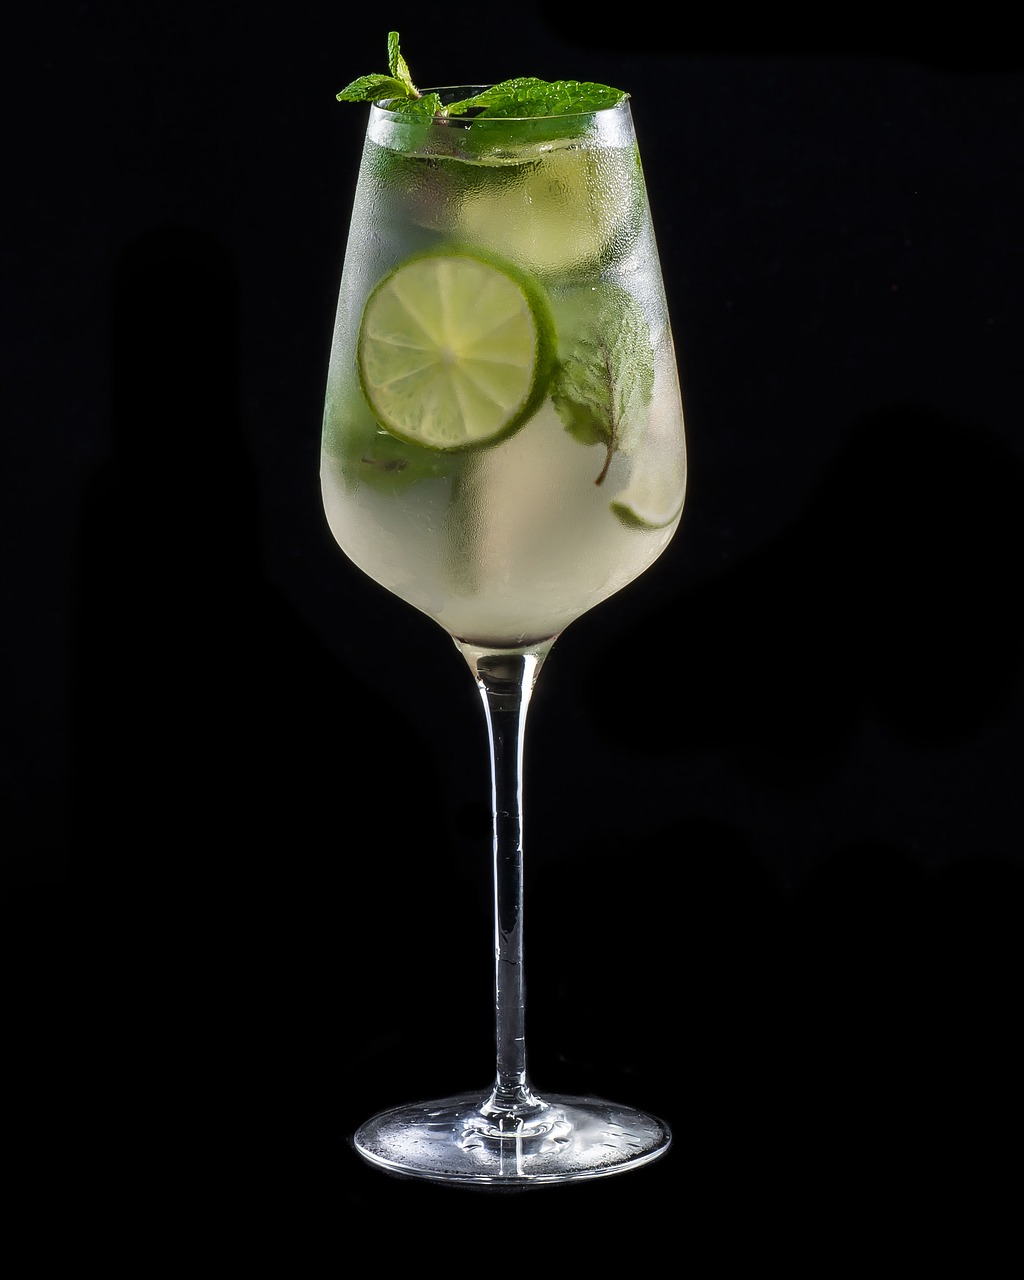 A Hugo is a refreshing cocktail from South Tyrol in Italy. You can also find it in Austria and Germany. This mild cocktail is a crowd pleaser on hot days. Here's the easy Hugo recipe.